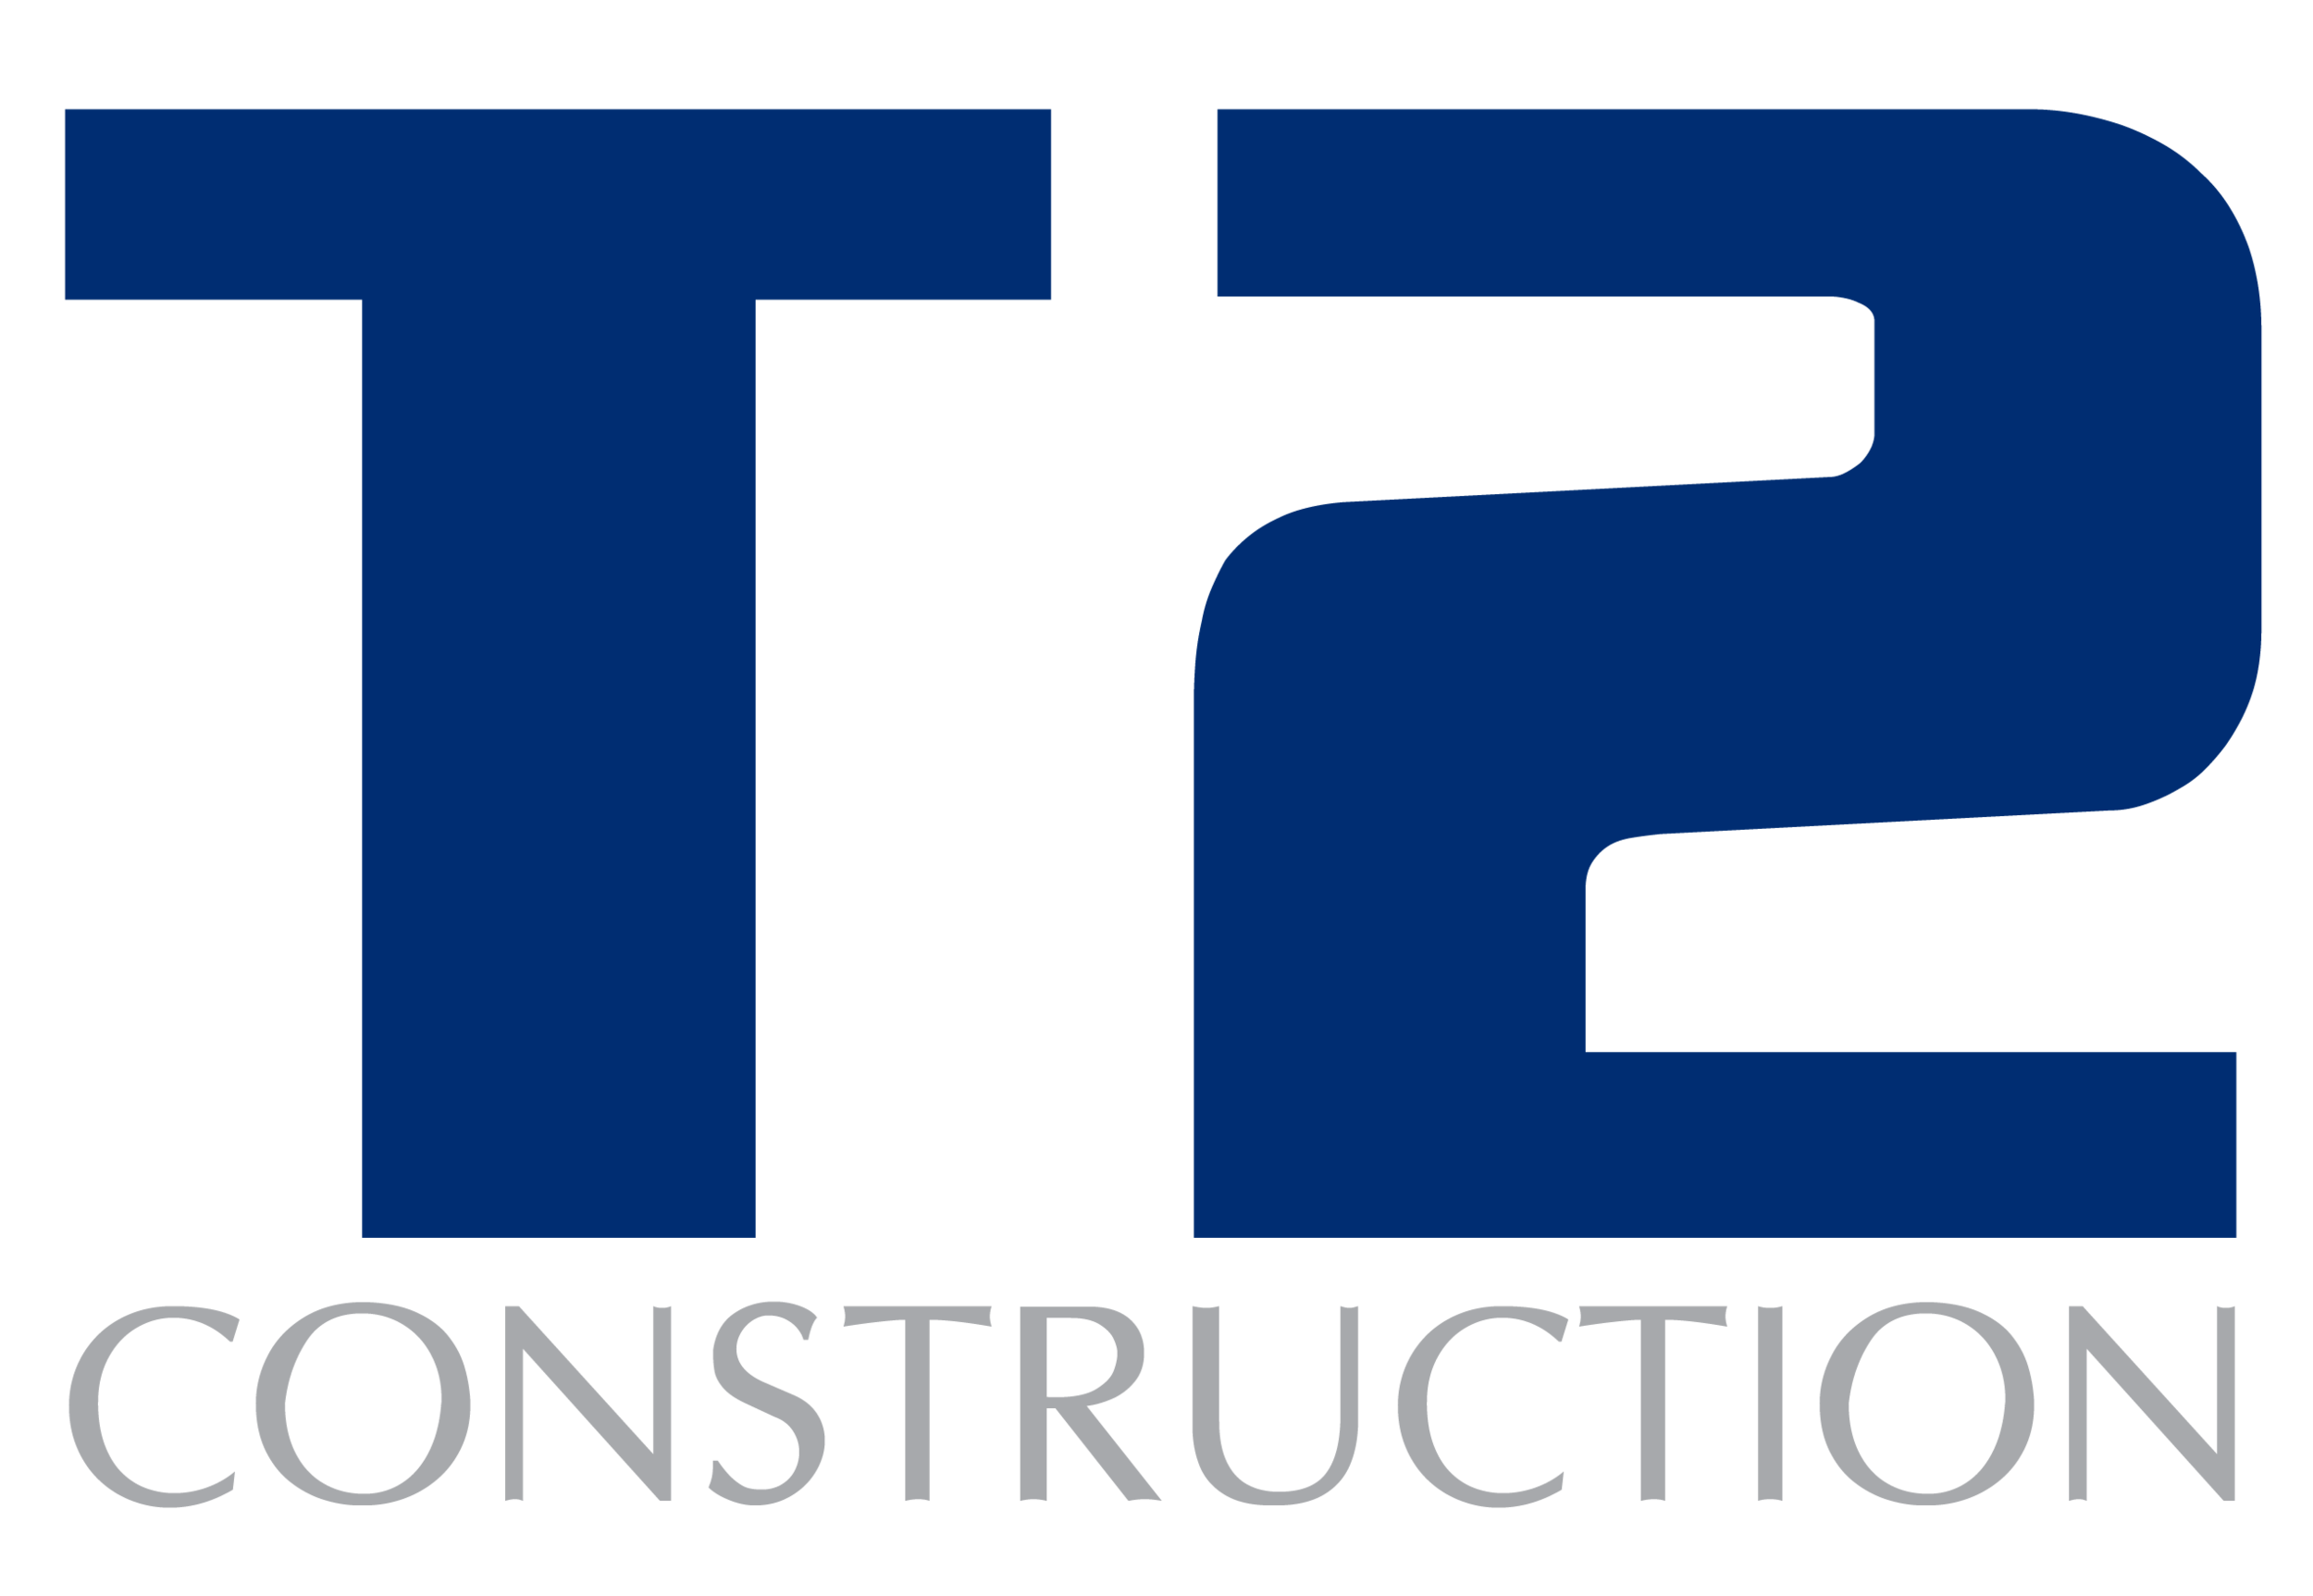 Donor Match - T2 Construction Management is matching all donations up to $5,000.